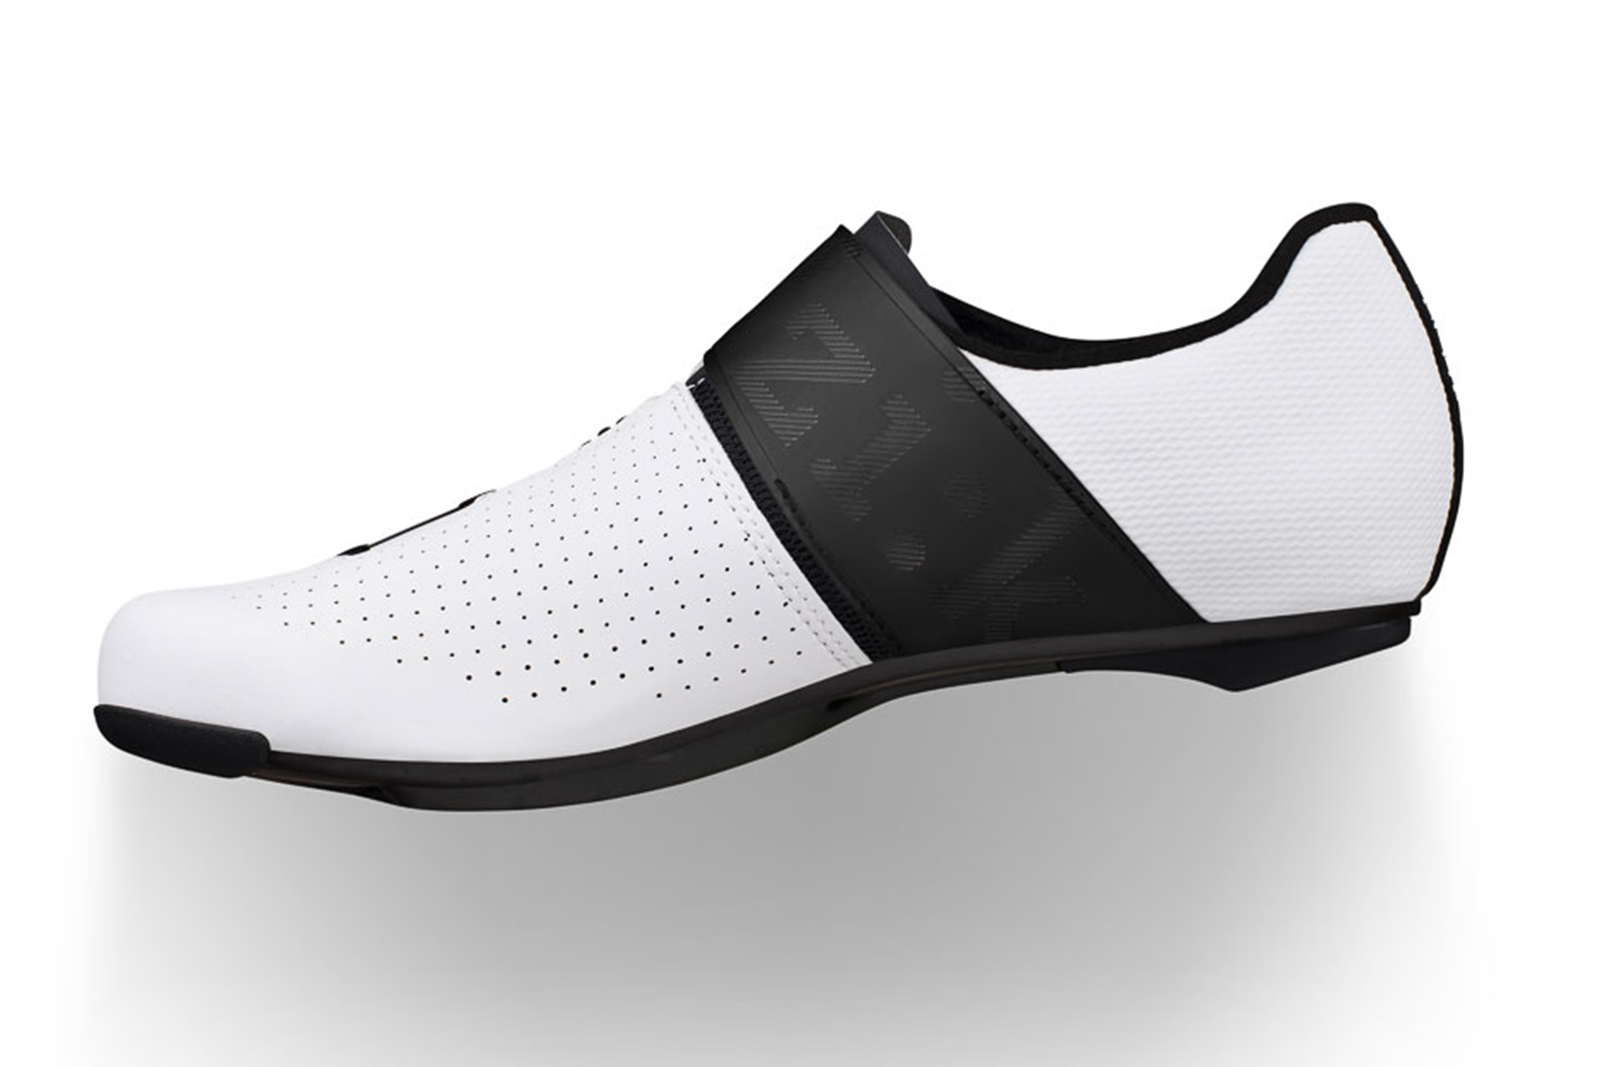 The Fizik Vento Infinito Carbon 2 Wide Brings Comfort to Road Racing Shoes thumbnail